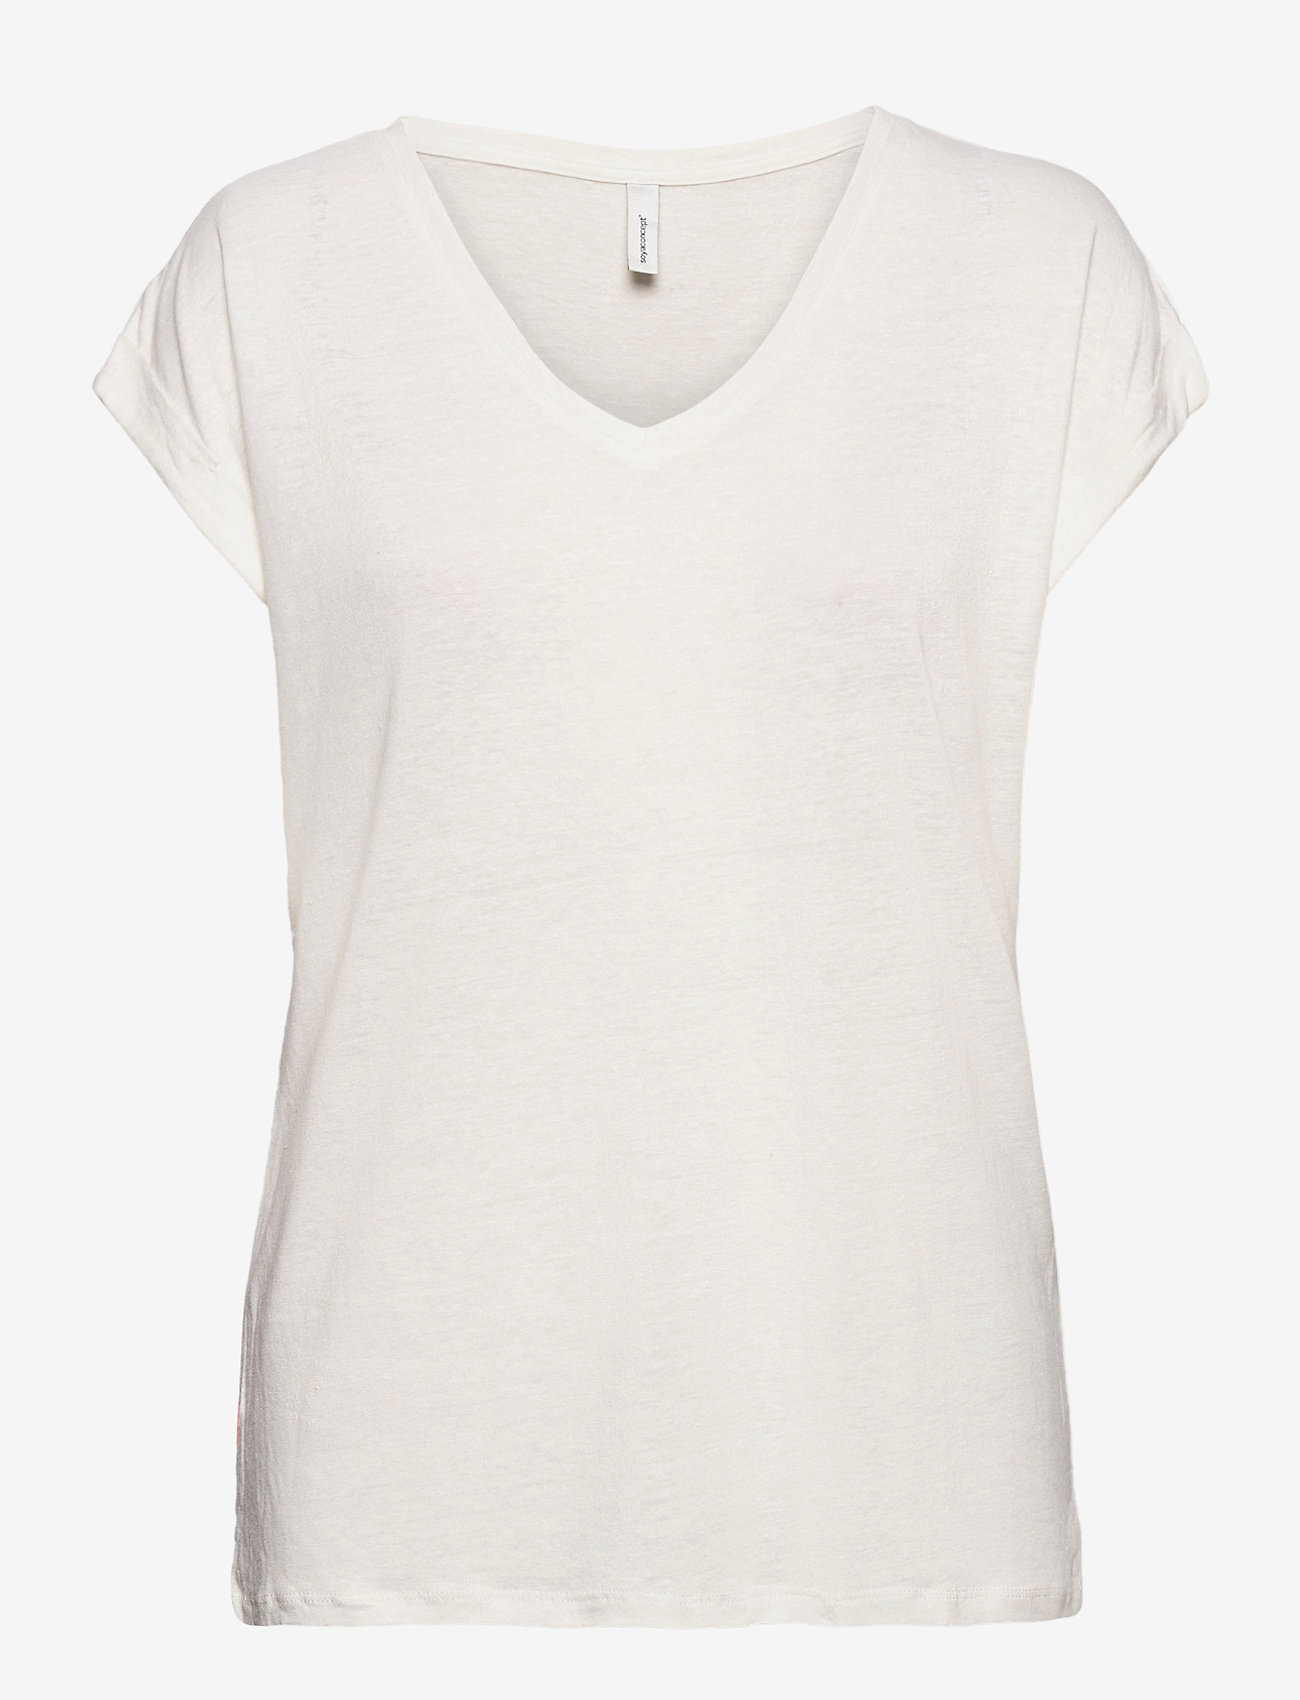 Soyaconcept - SC-ISABEL - t-shirts - offwhite - 0